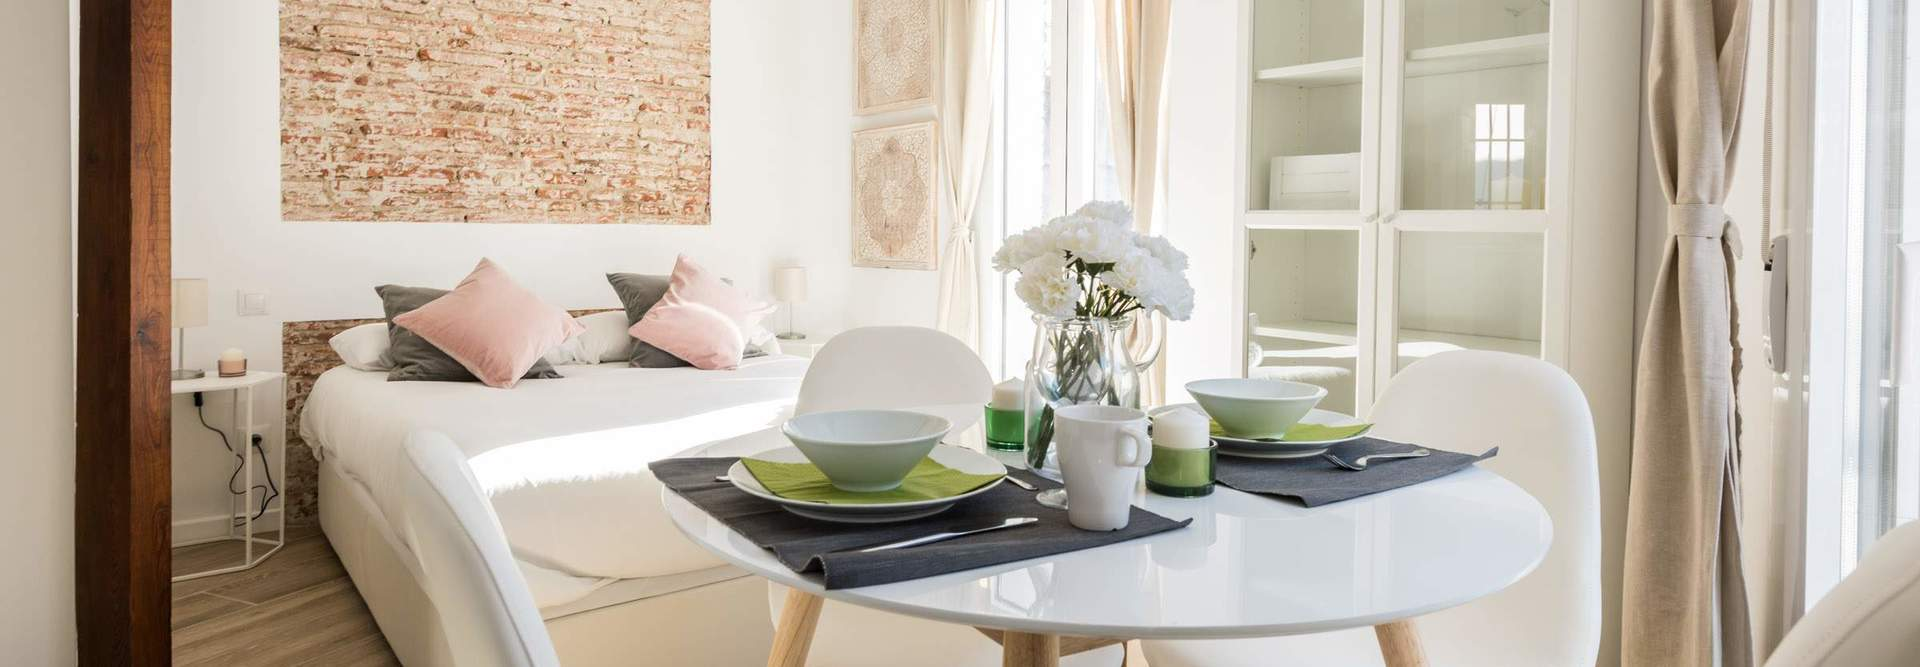 Home alquiler apartamento madrid centro mad4rent  6